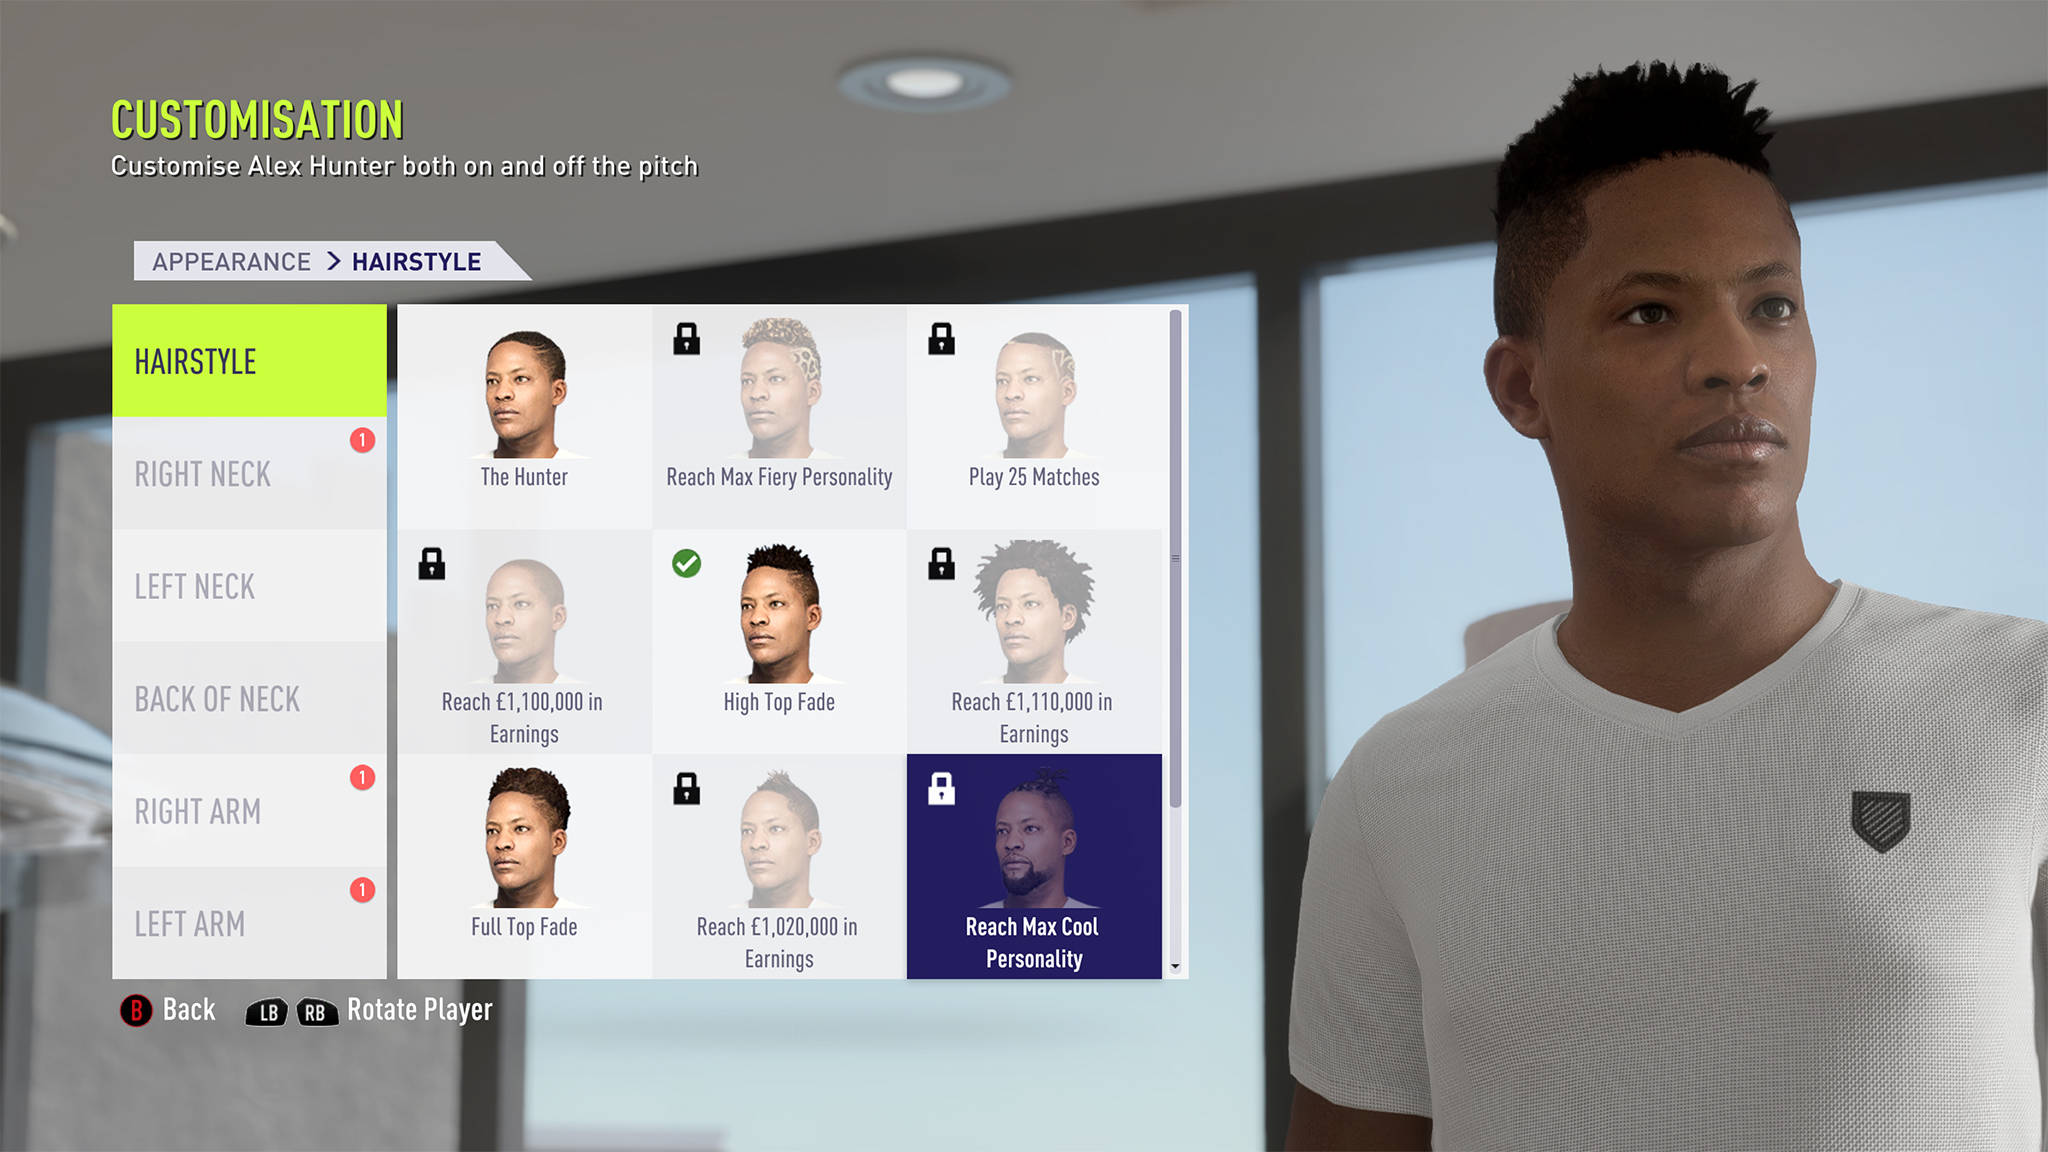 Alex Hunter's choices will impact his looks